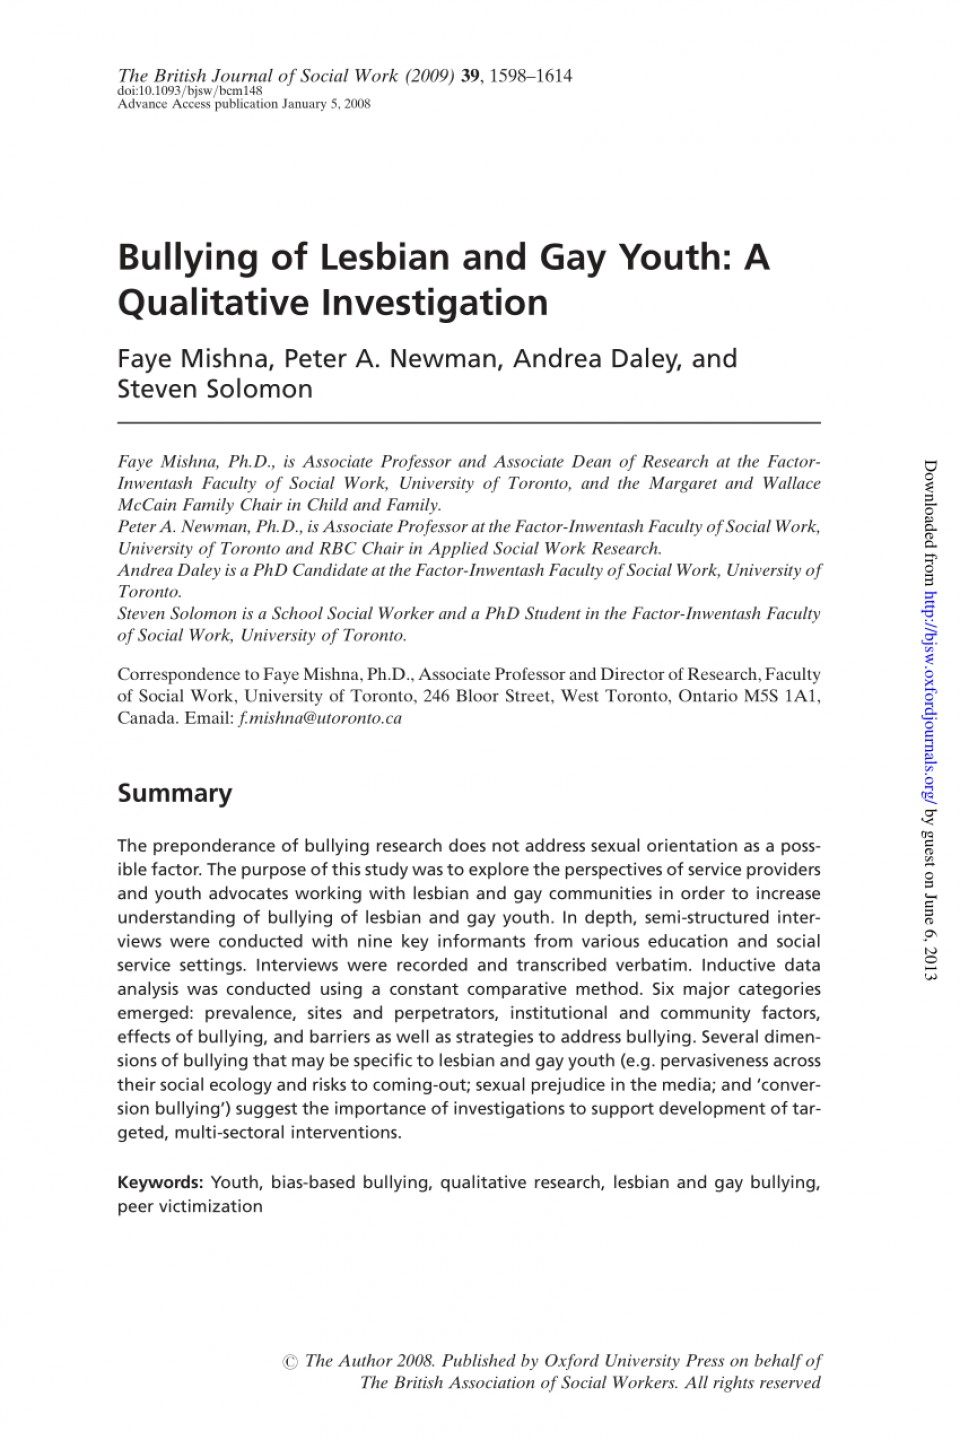 005 Bullying Research Paper Pdf Imposing Short About Quantitative Effects Of 960